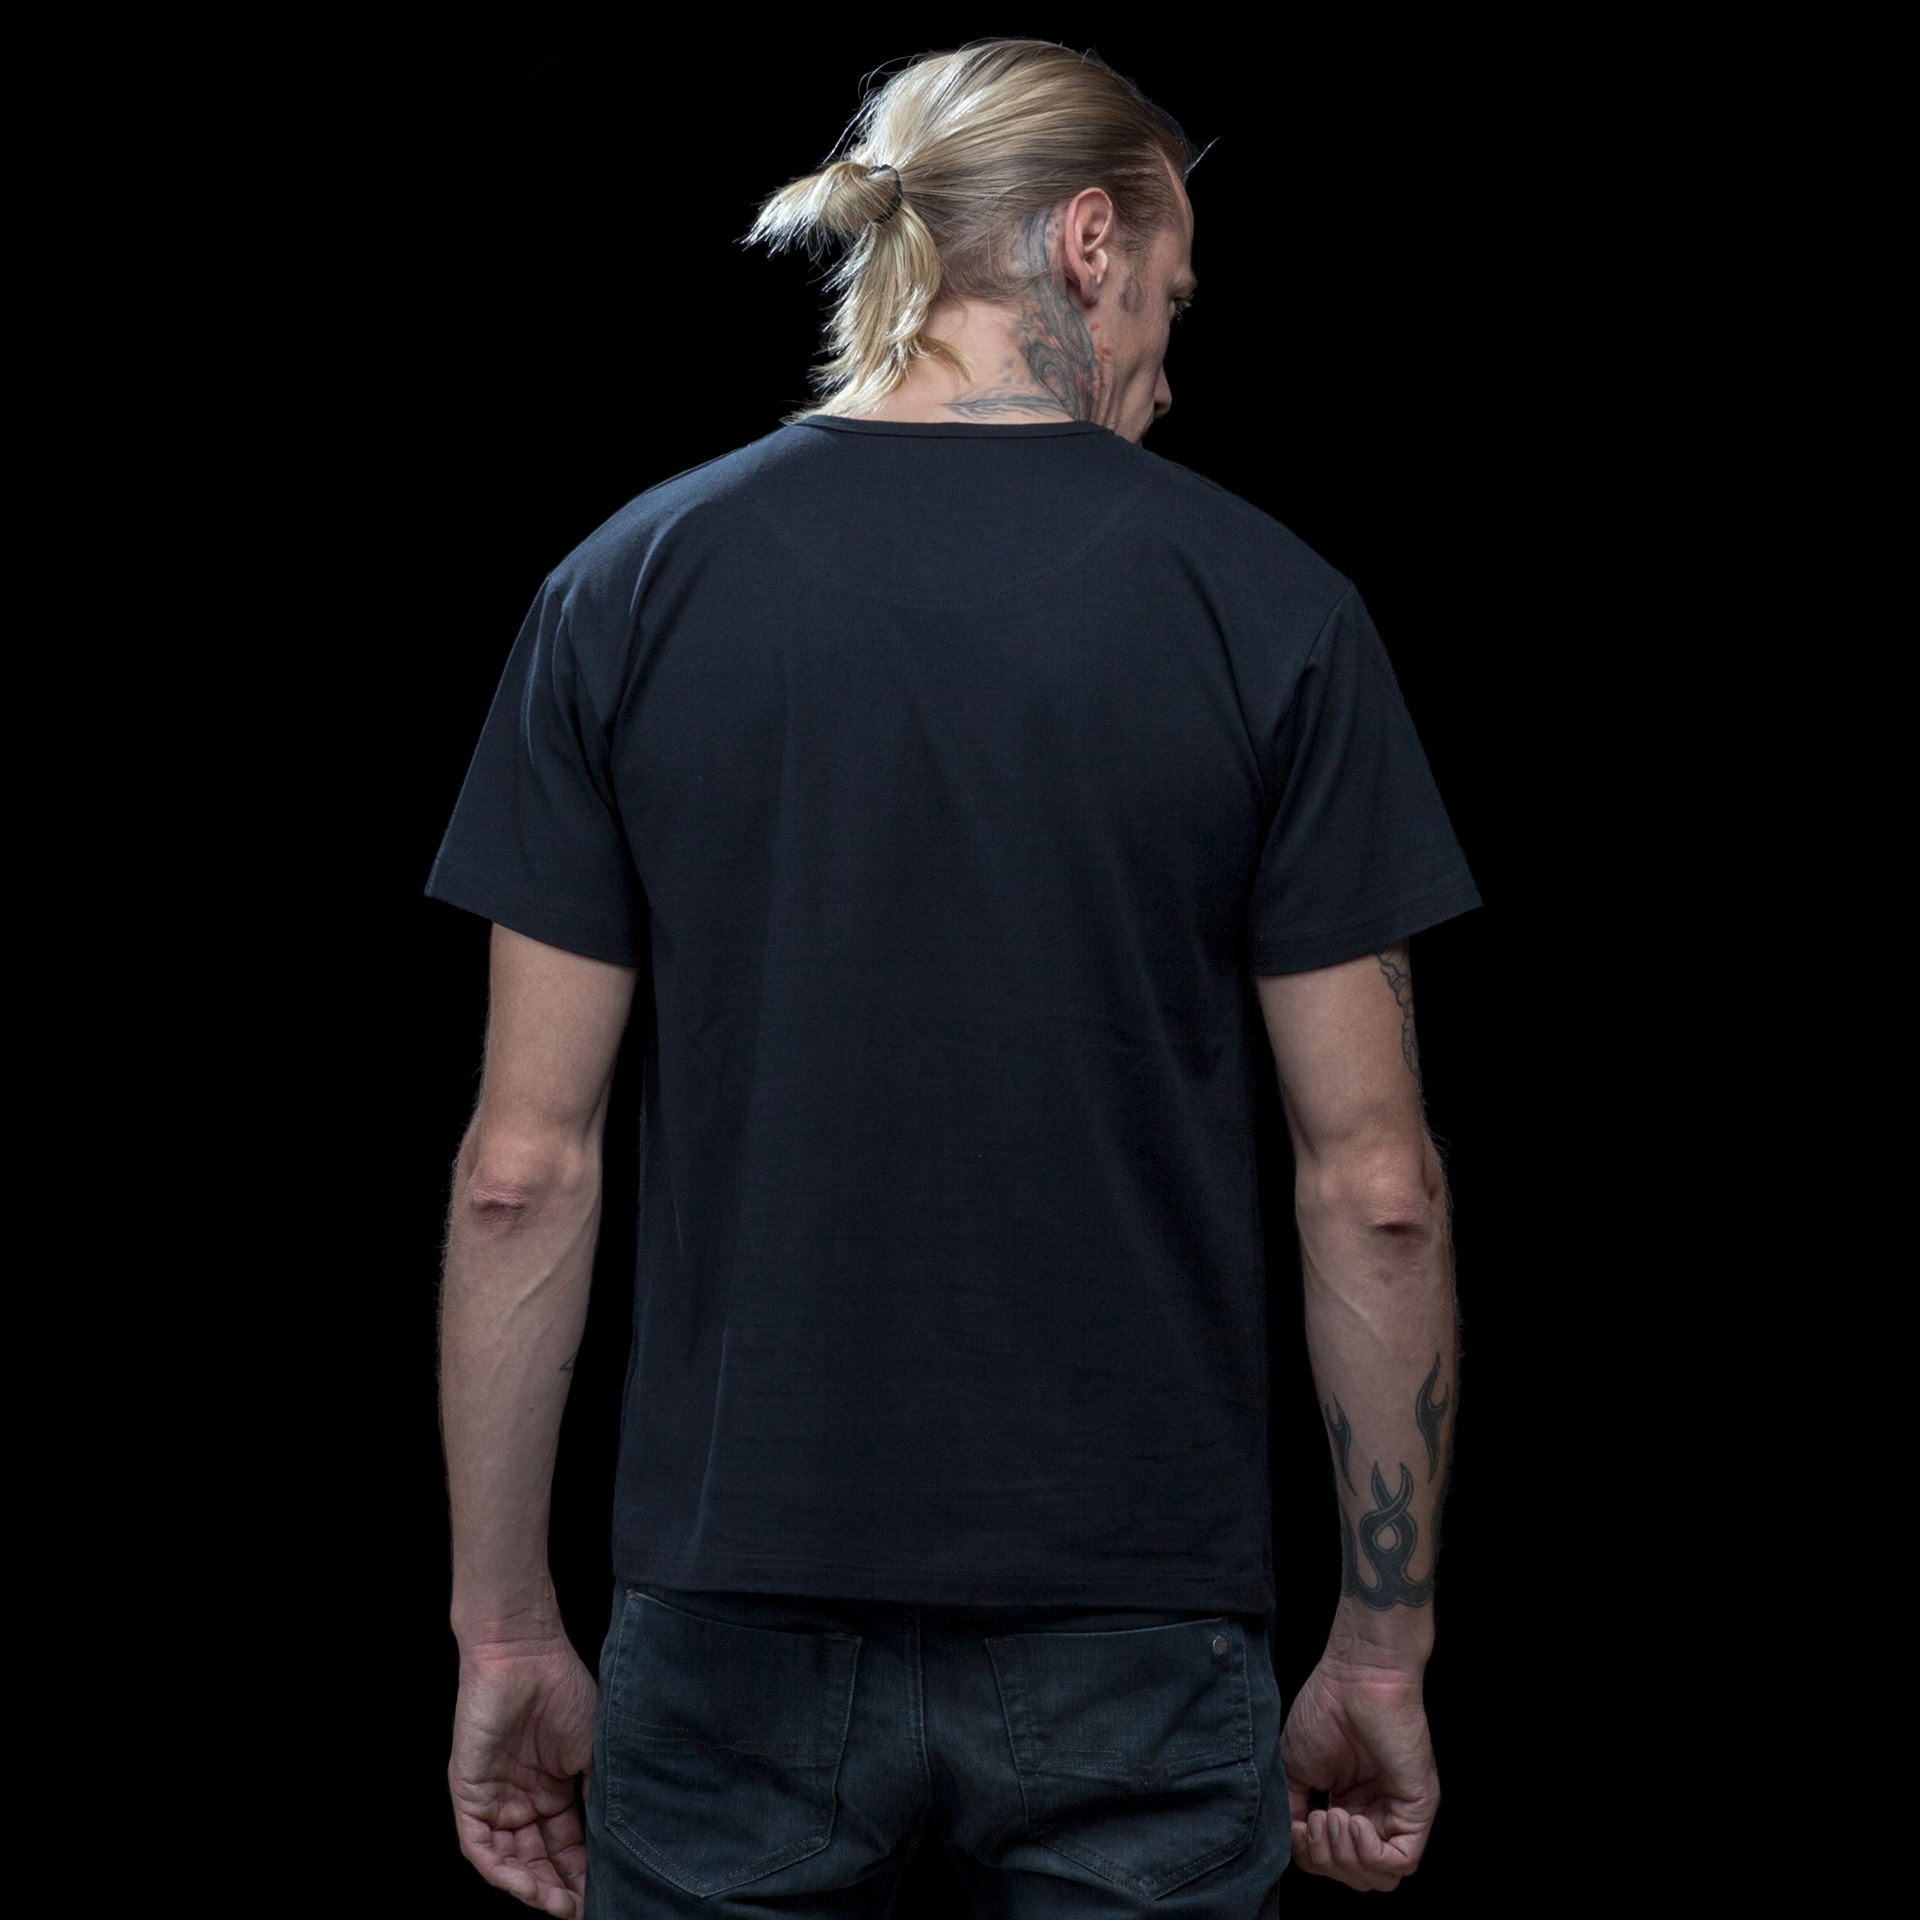 black t shirt model back - photo #15